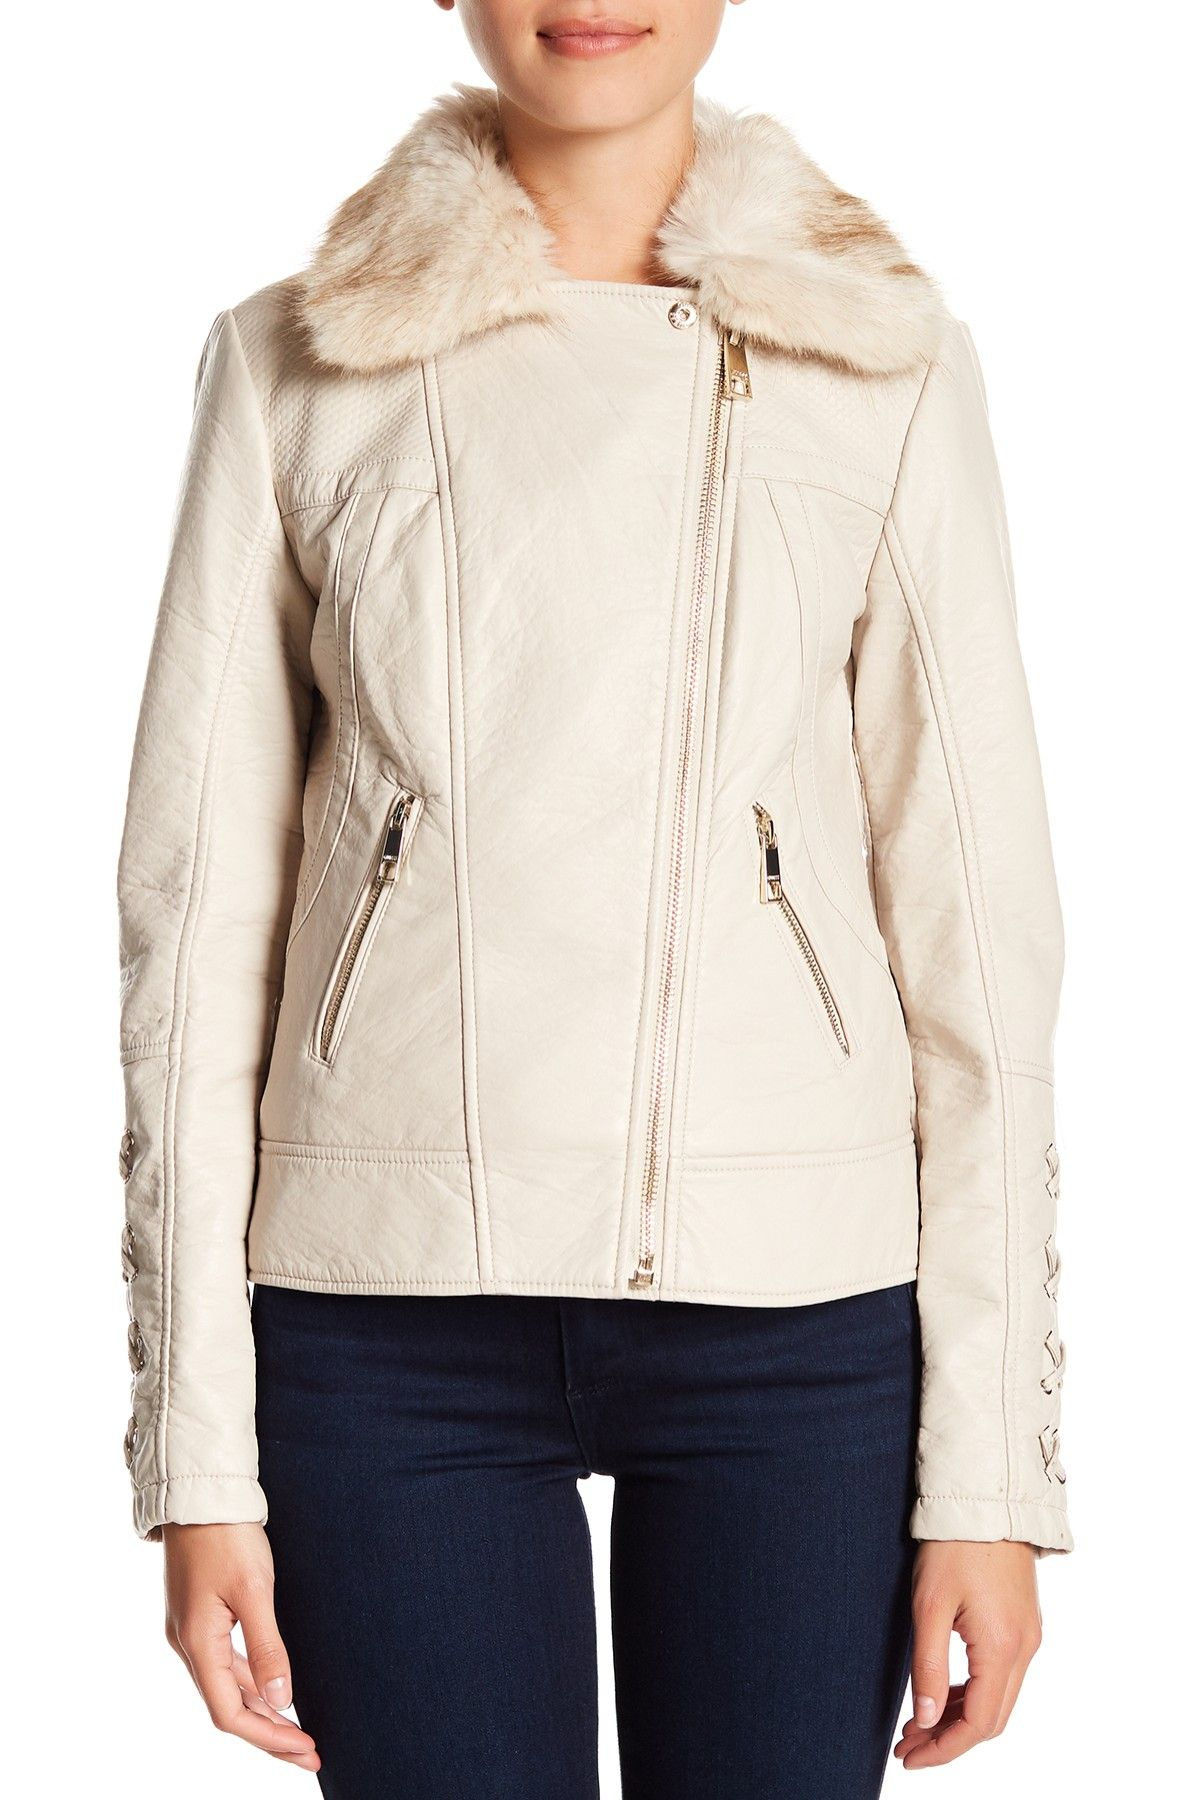 GUESS Faux Fur & Leather Moto Jacket in 2020 Leather